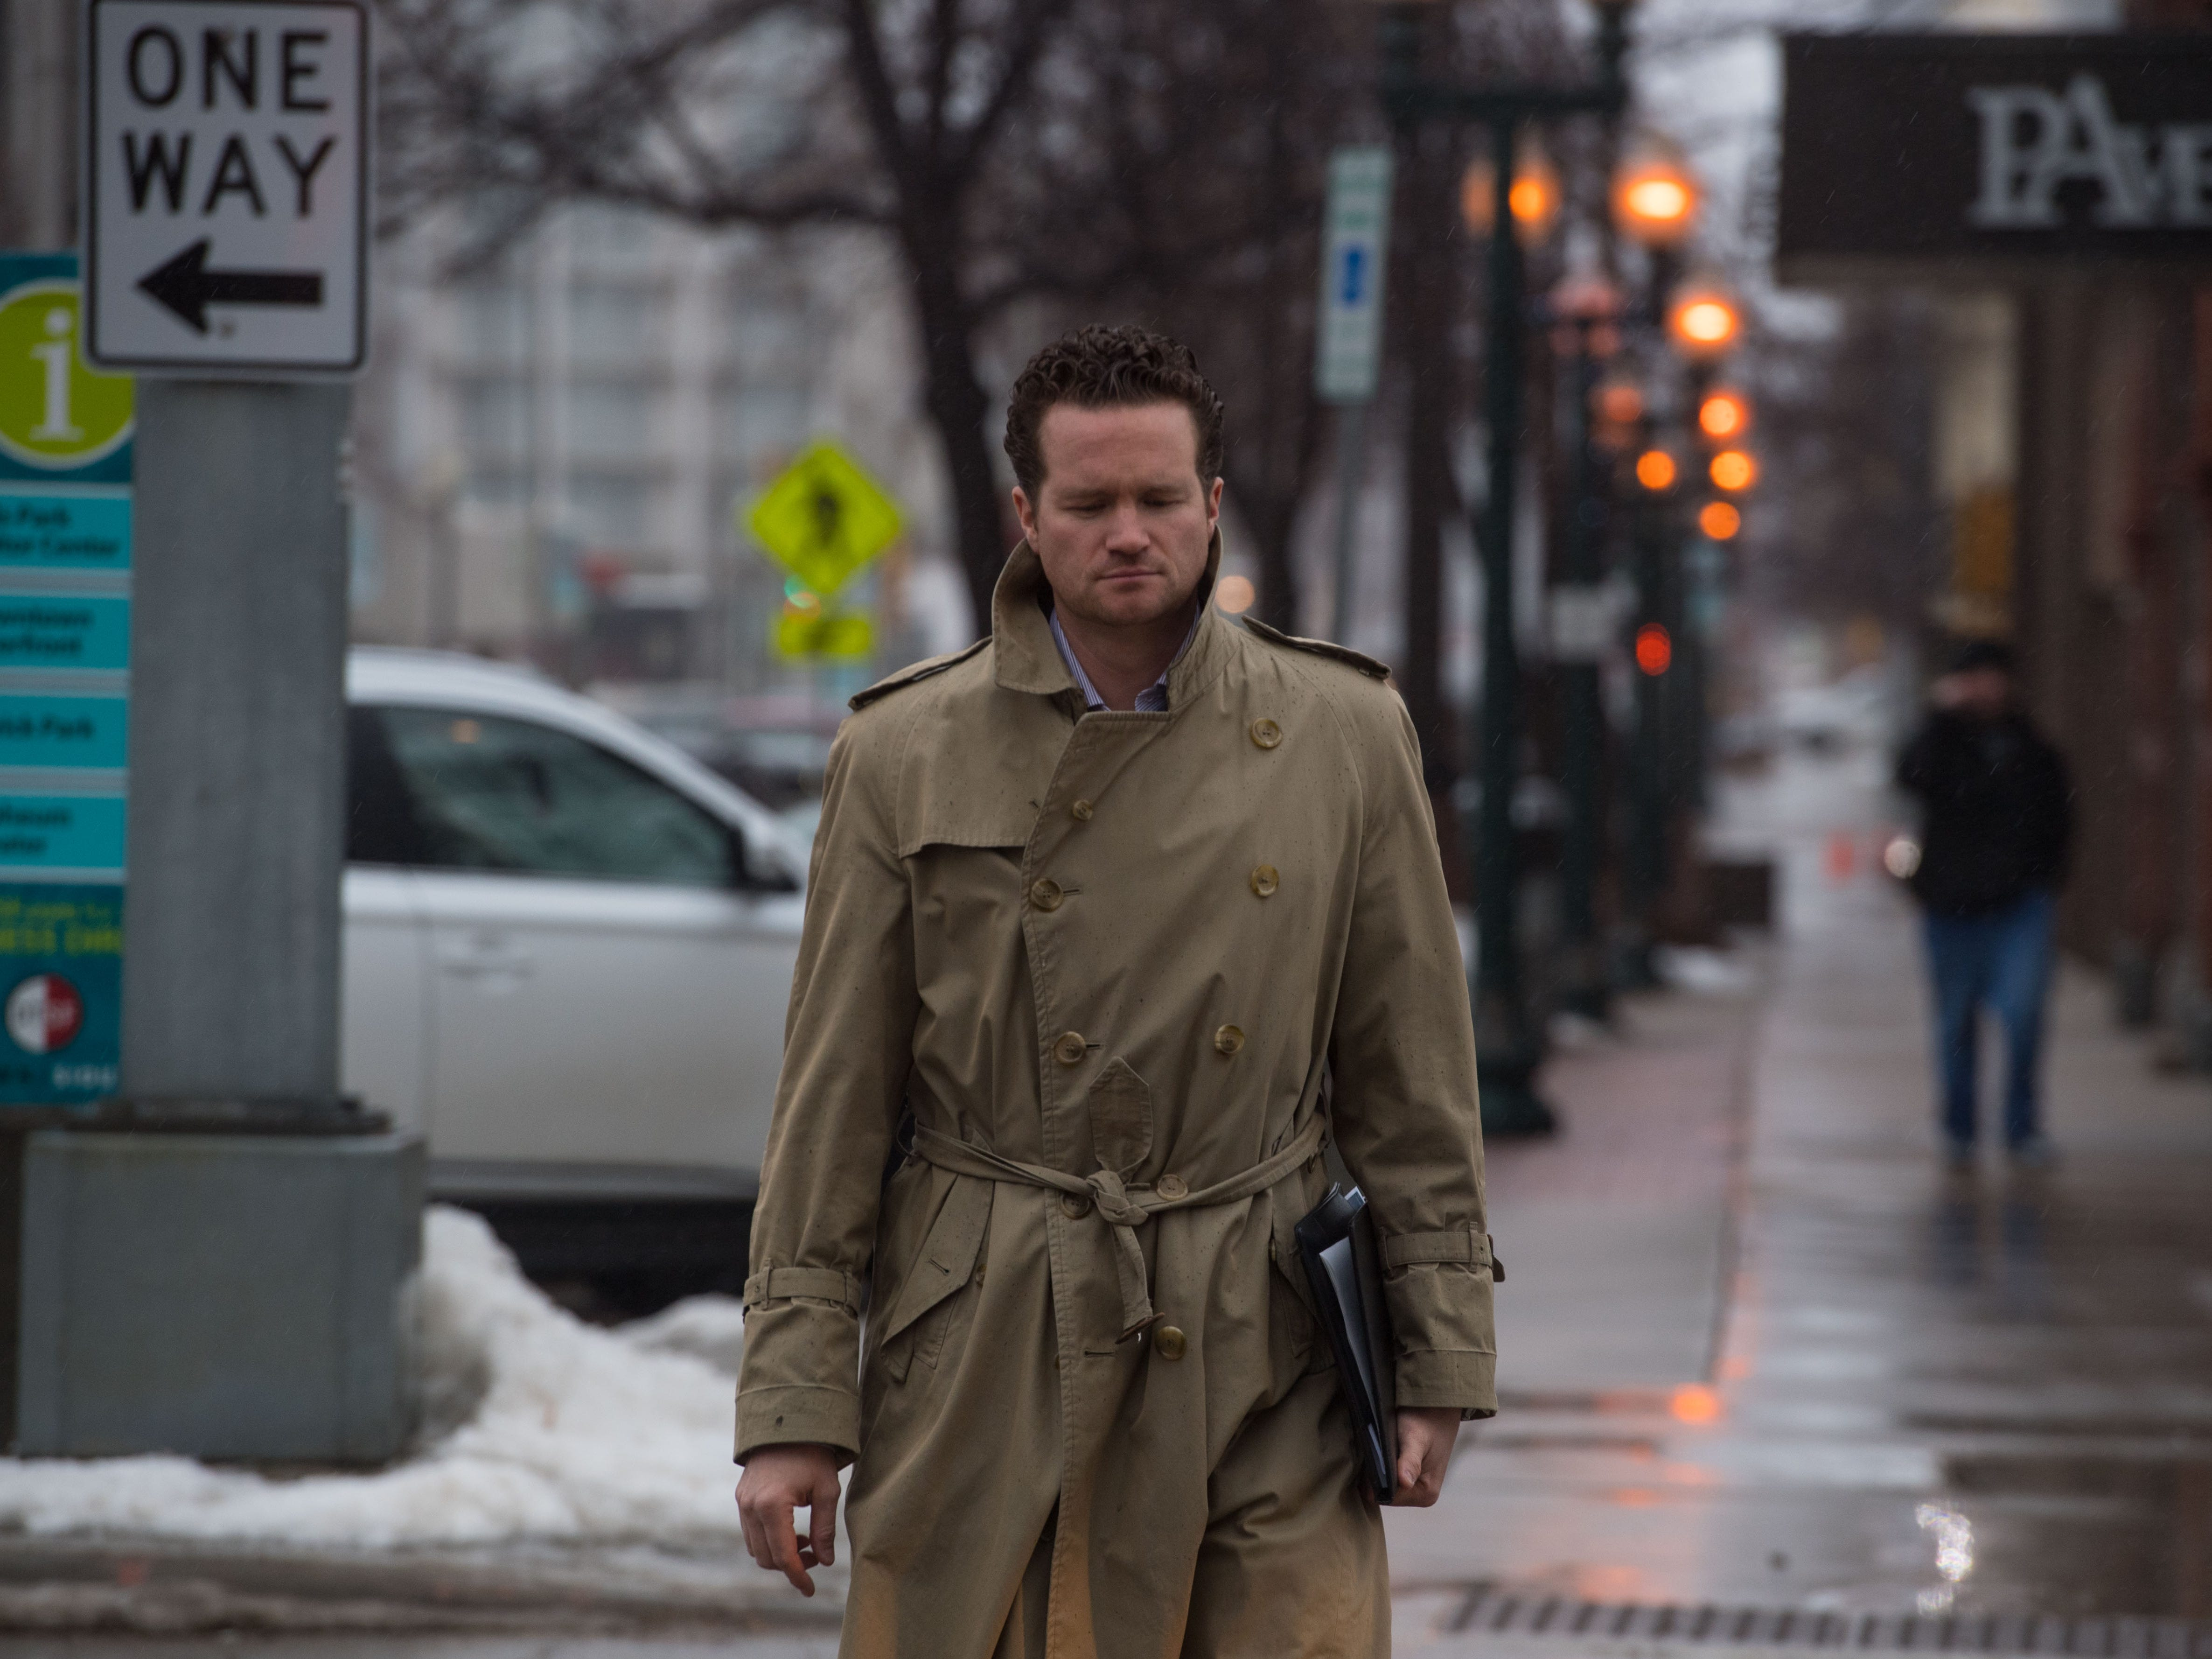 Jon Kirby walks in the rain in downtown Sioux Falls, S.D., Wednesday, March 13, 2019.